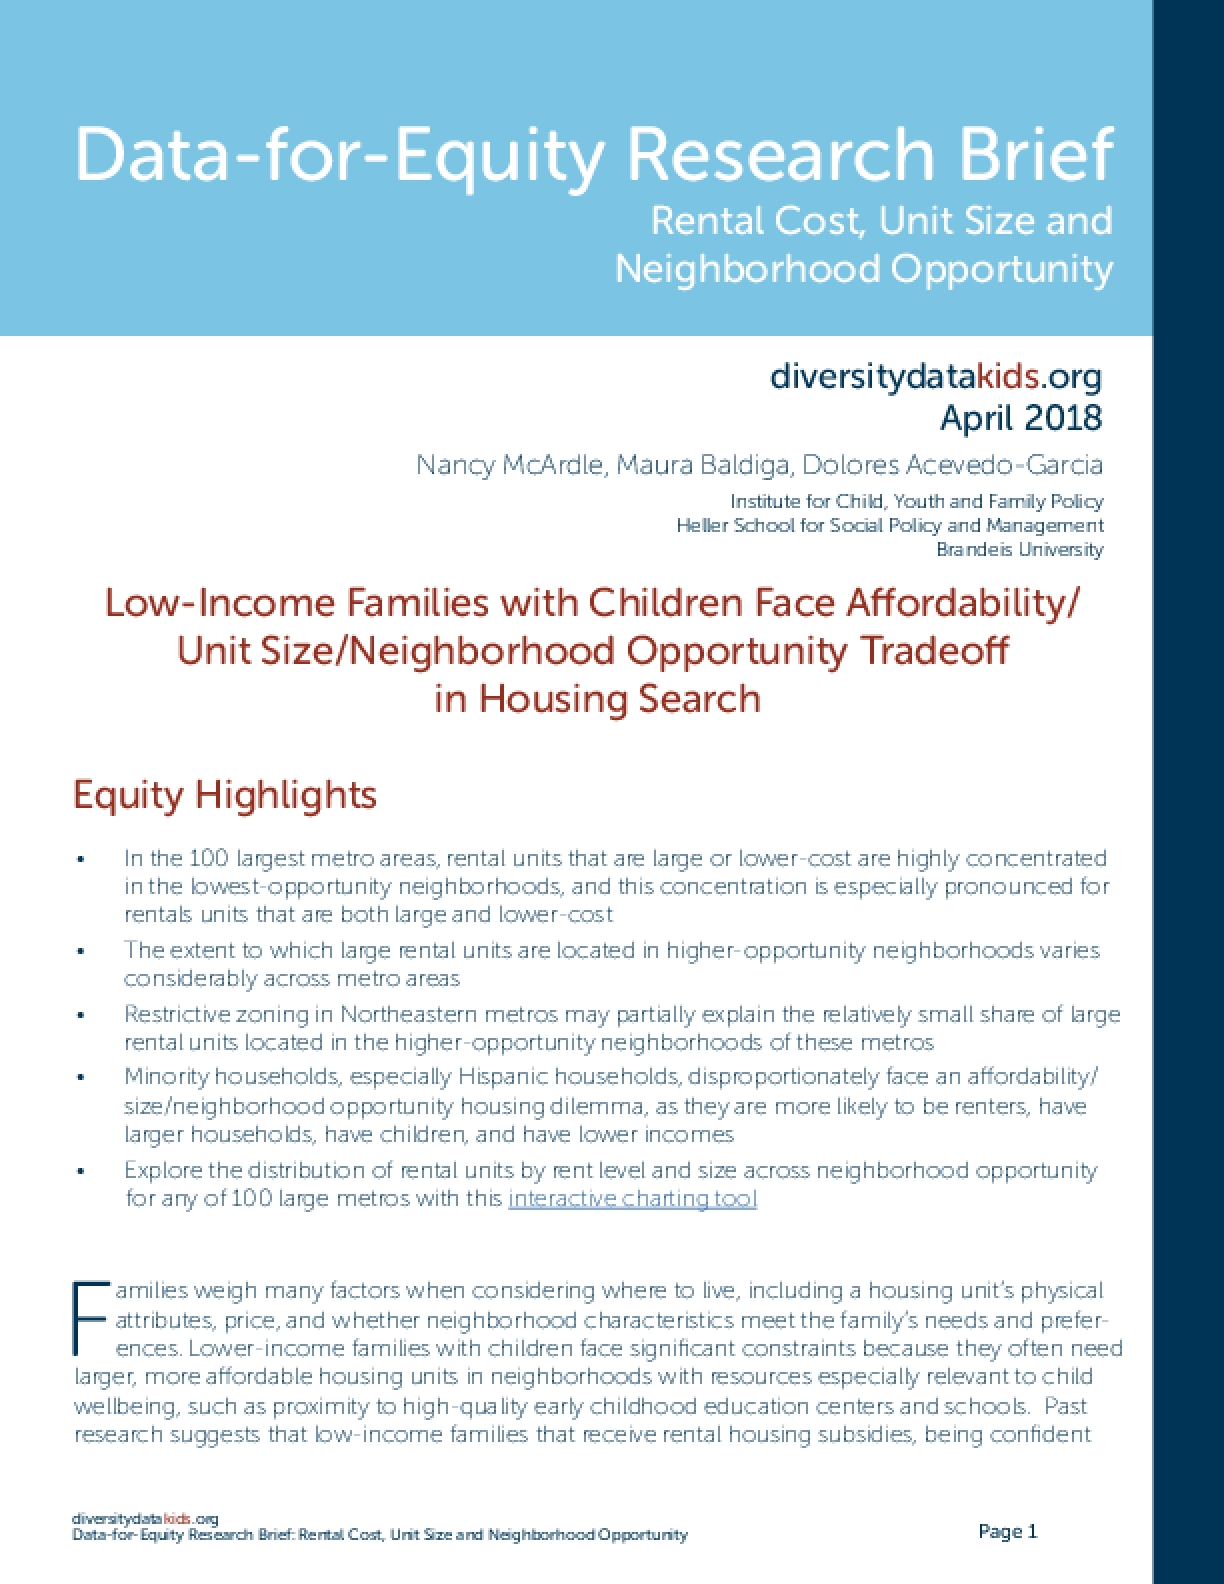 Data-for-Equity Research Brief: Rental Cost, Unit Size and Neighborhood Opportunity